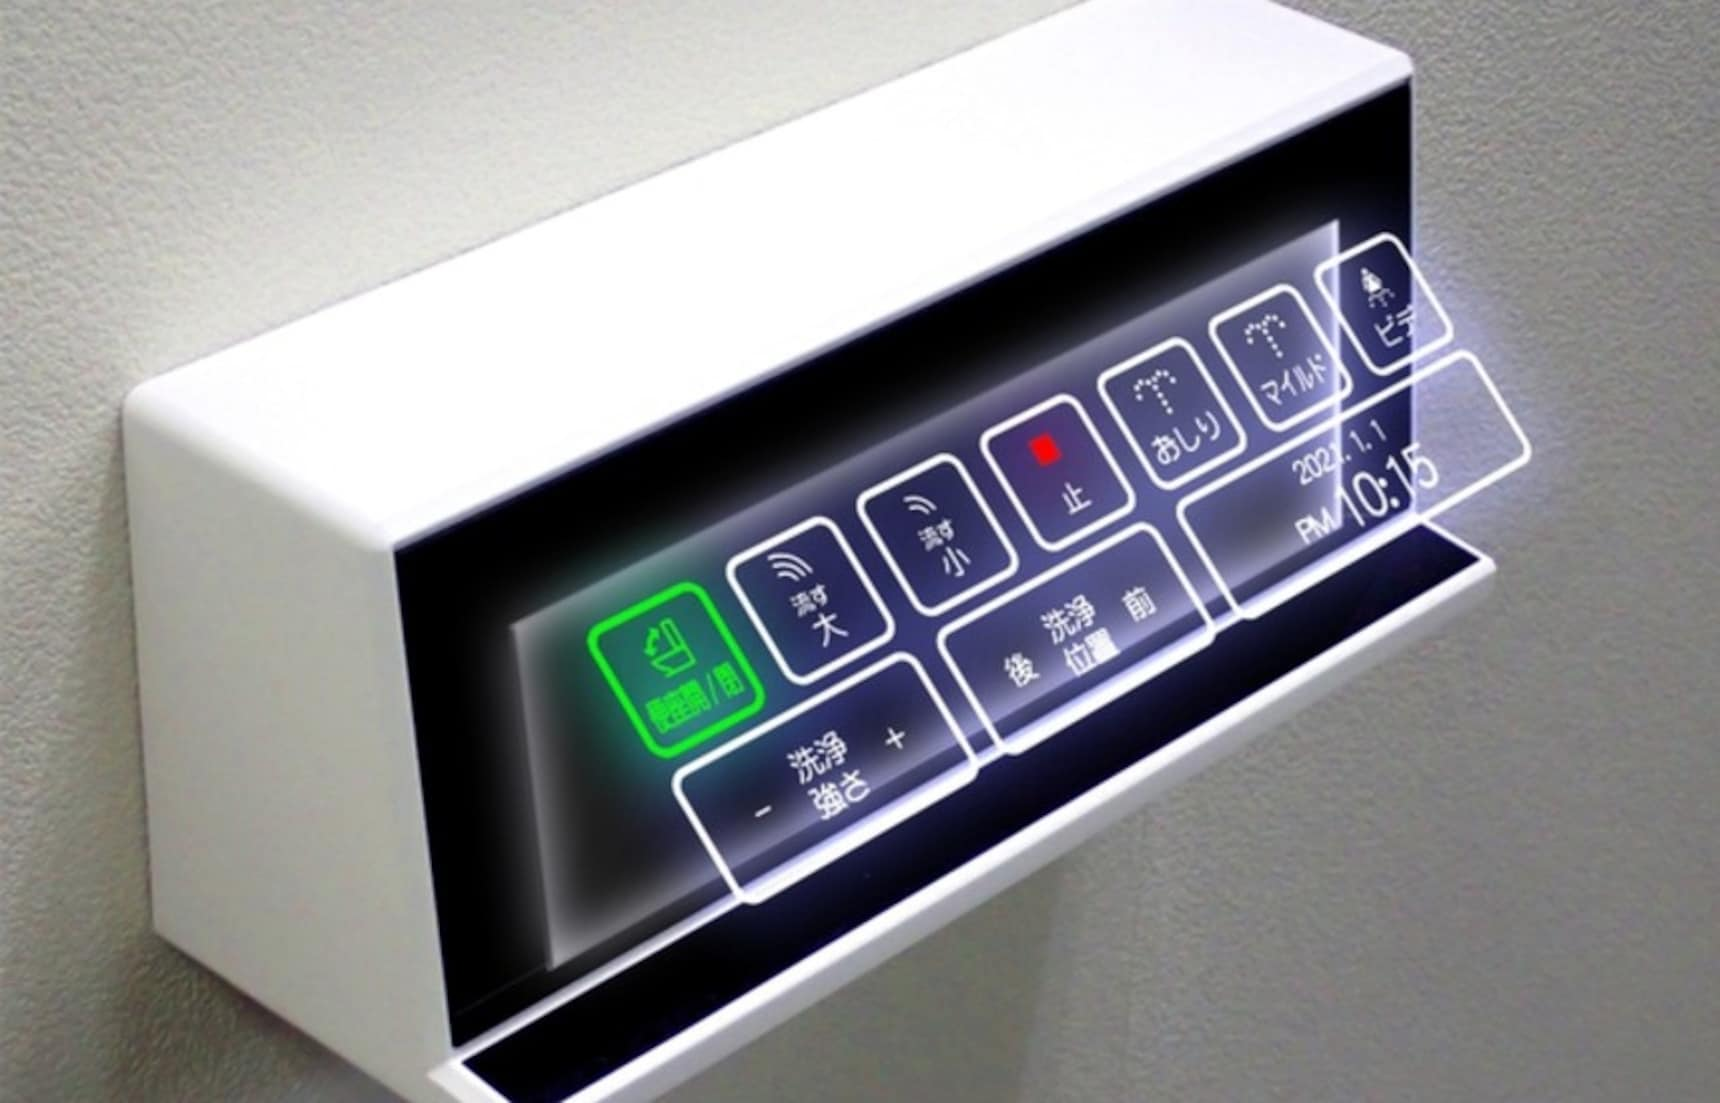 Touchless Toilet Panel Is Safety Innovation